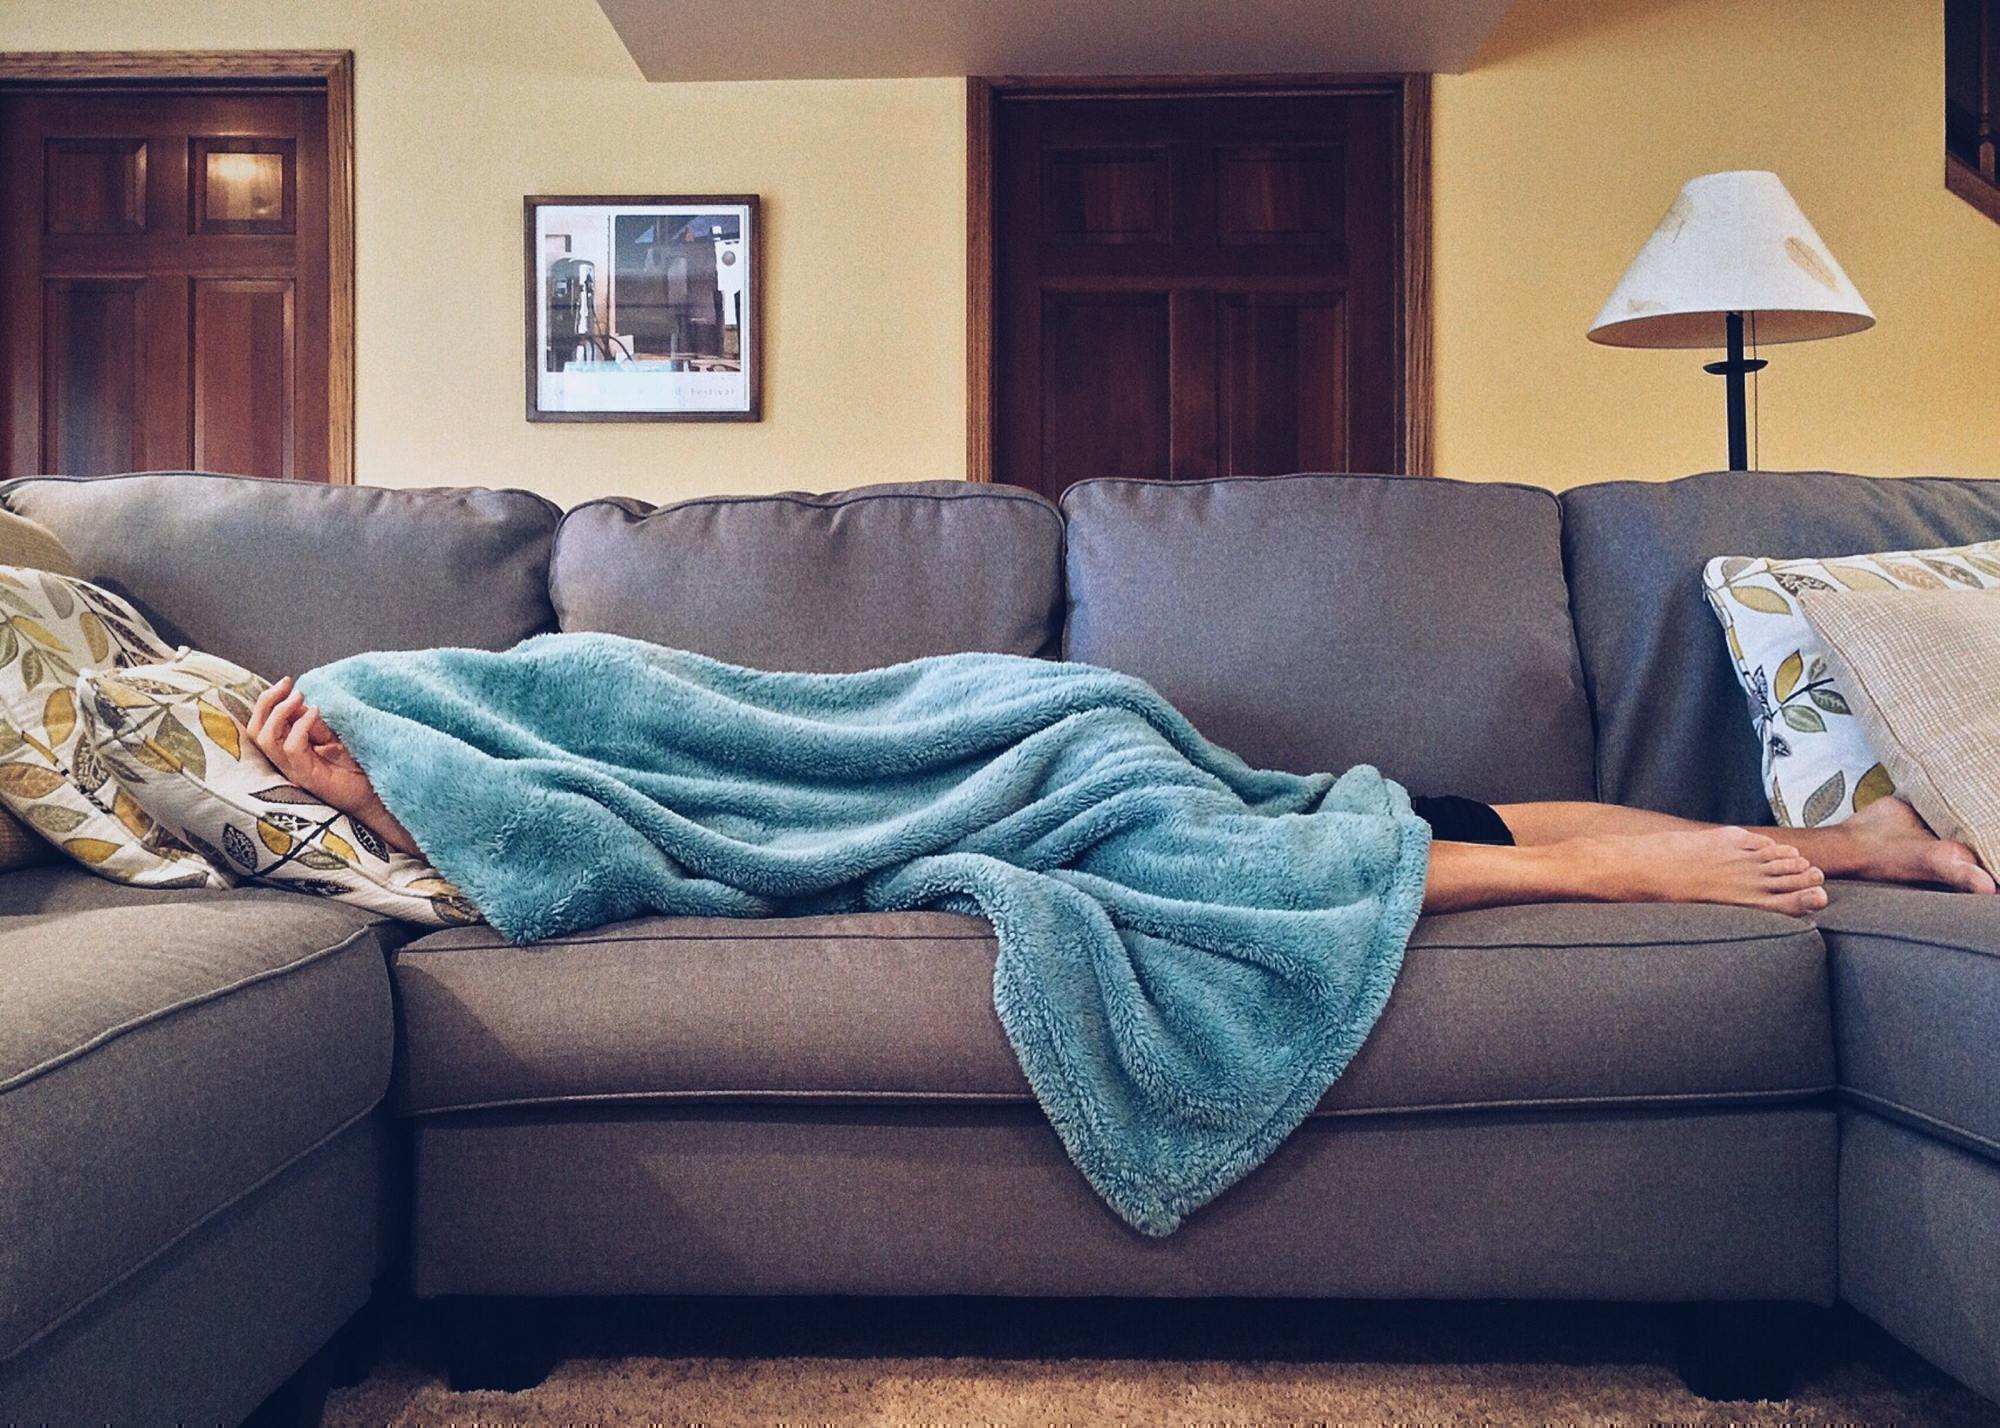 a sick person lays on a couch with a blanket over their head